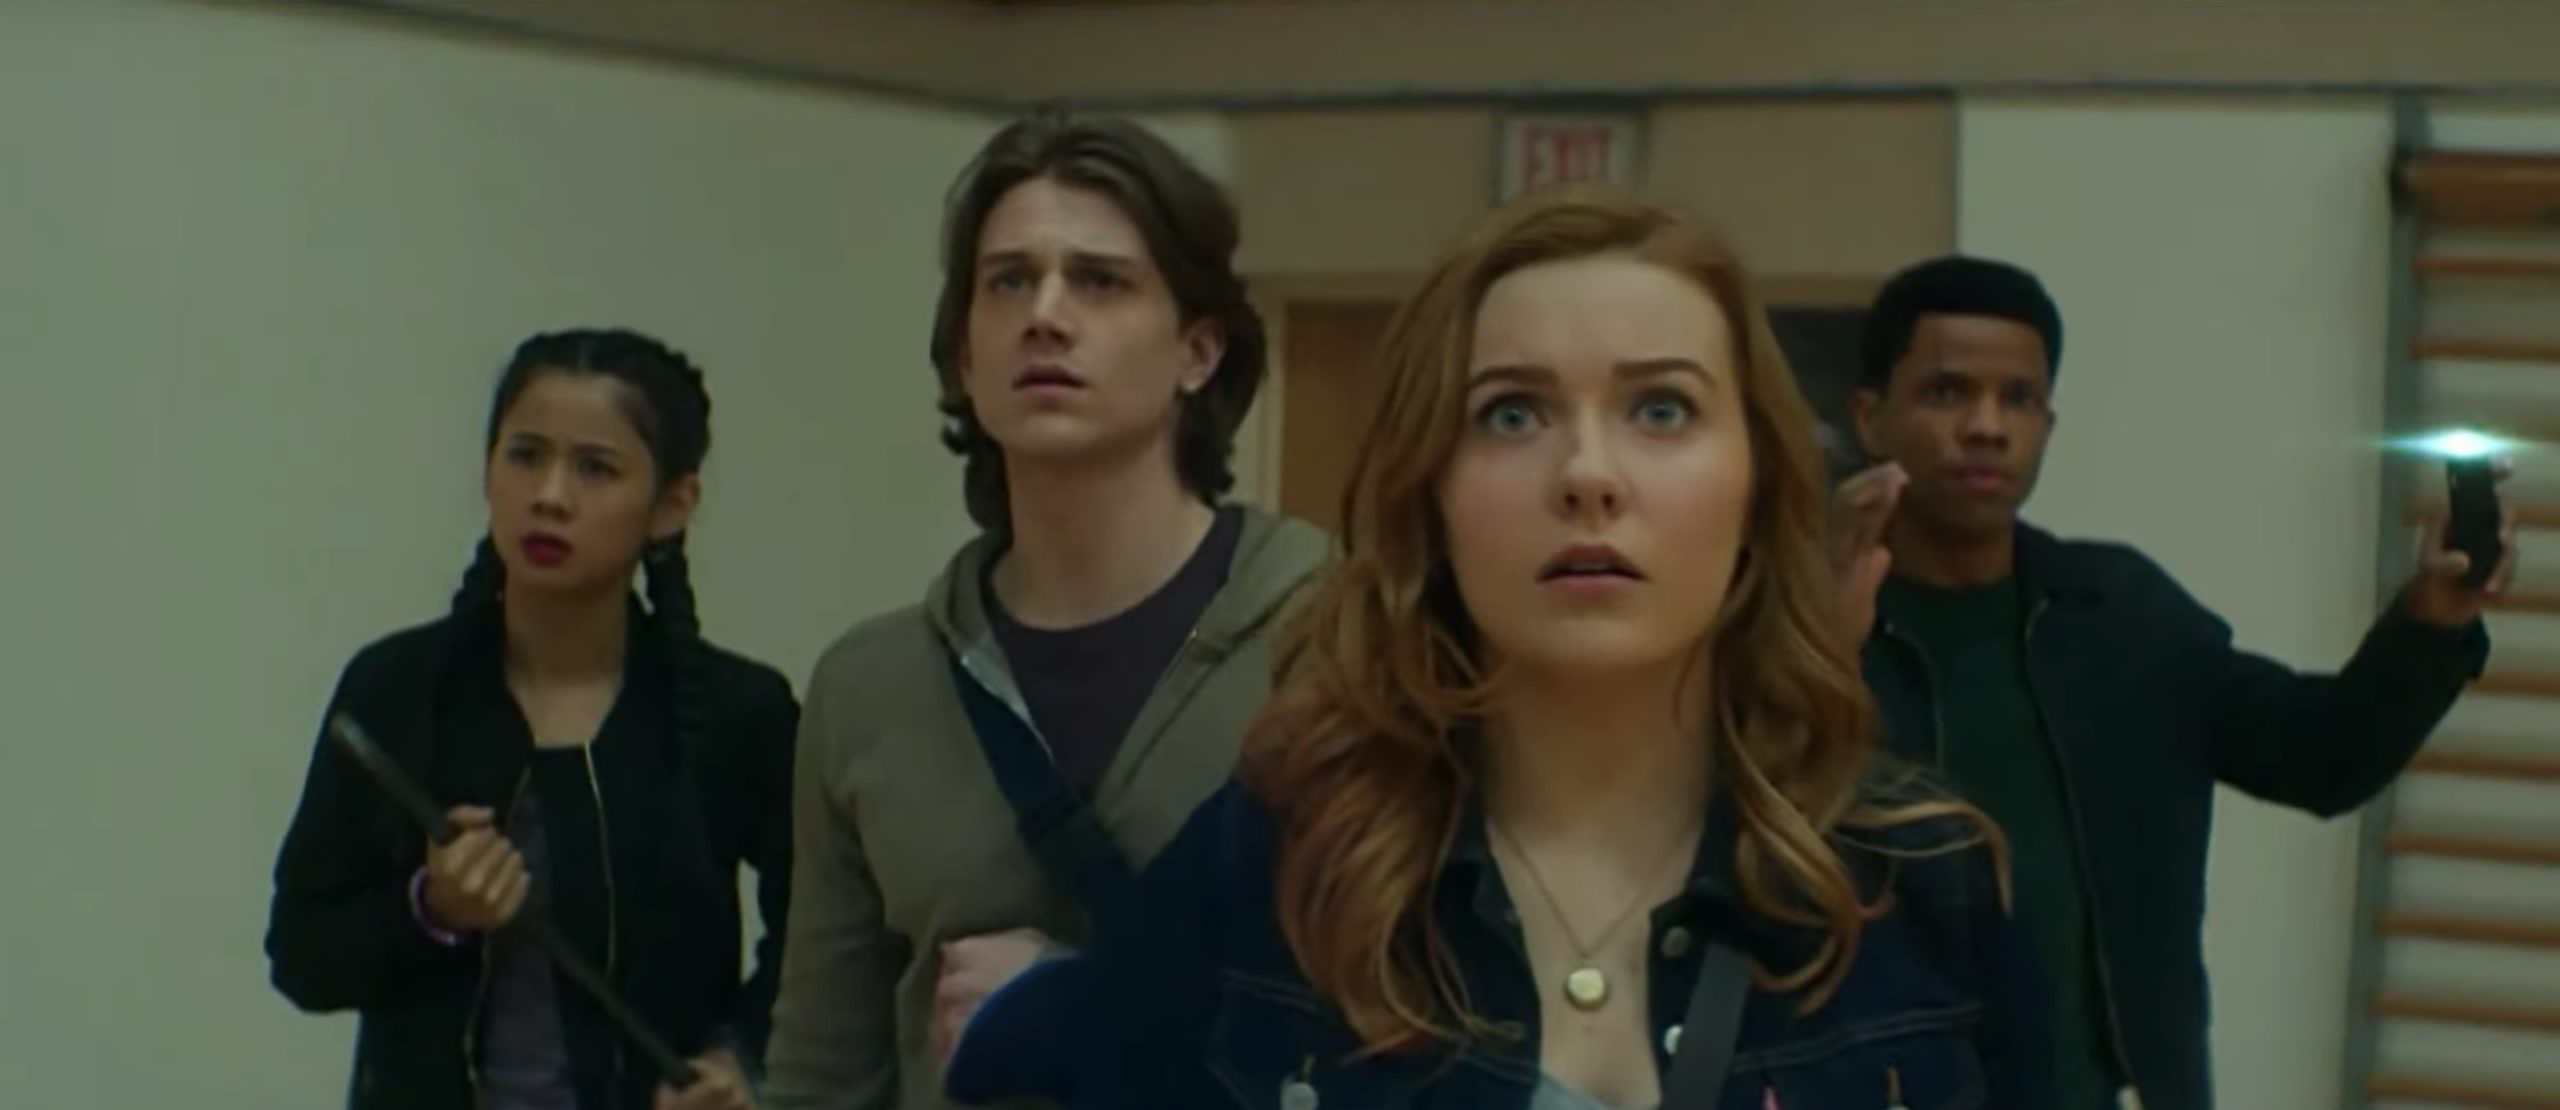 Nancy Drew Episode 10 Review: The Mark of the Poisoner's Pearl ...